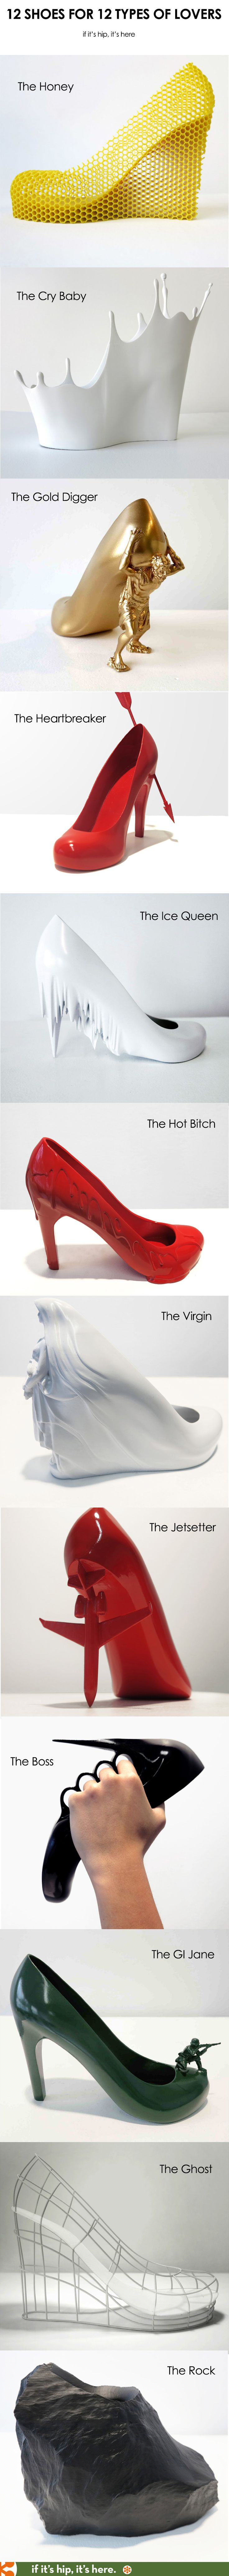 Artist designs 12 different shoes for 12 ex-girlfriends. Learn more at if it's hip, it's here.